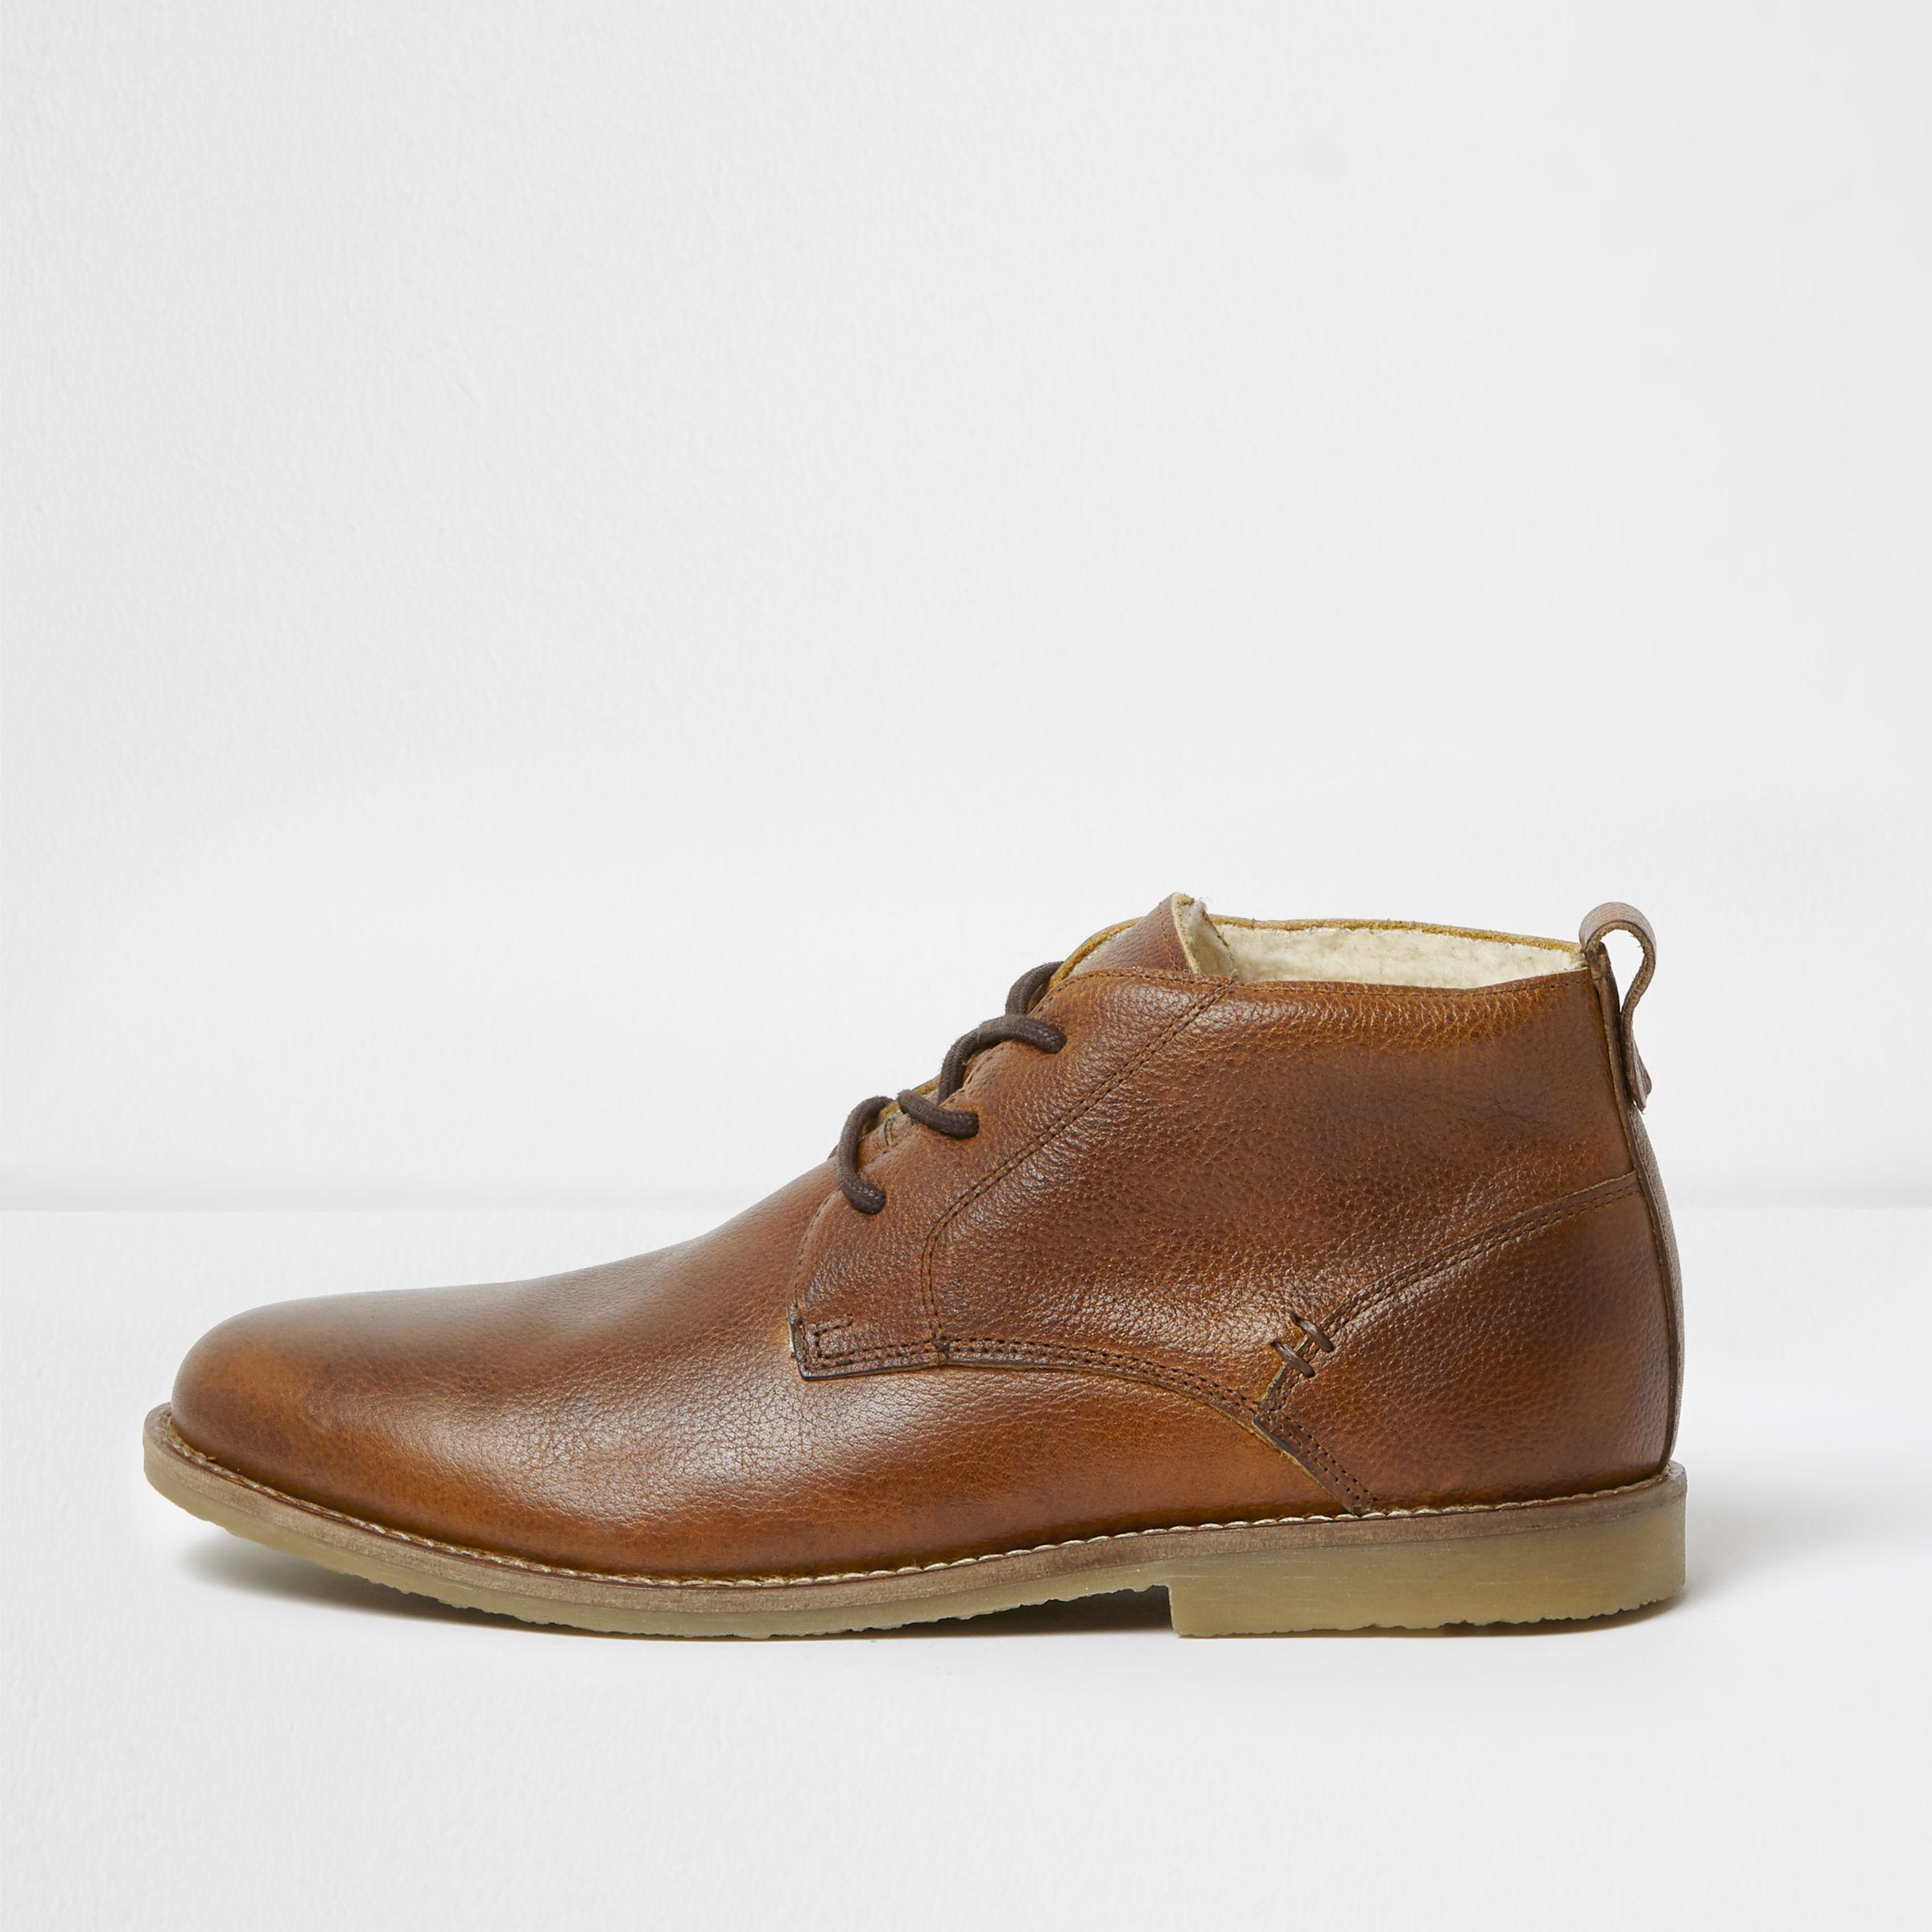 9b6a14ba8abc2 Lyst - River Island Tan Leather Borg Lined Desert Boots in Brown for Men